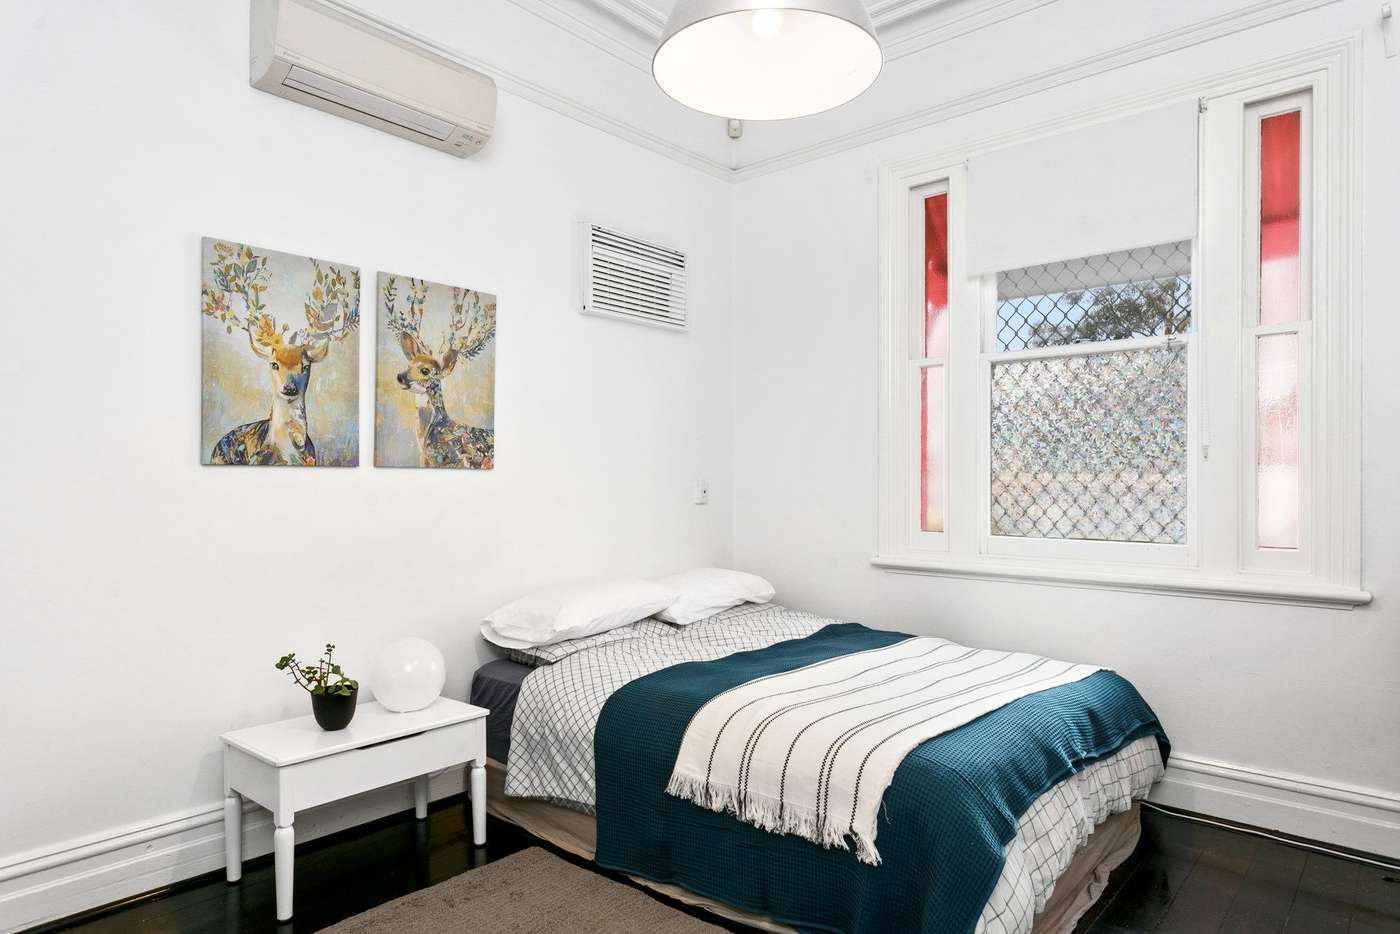 Fifth view of Homely house listing, 188 Railway Parade, West Leederville WA 6007